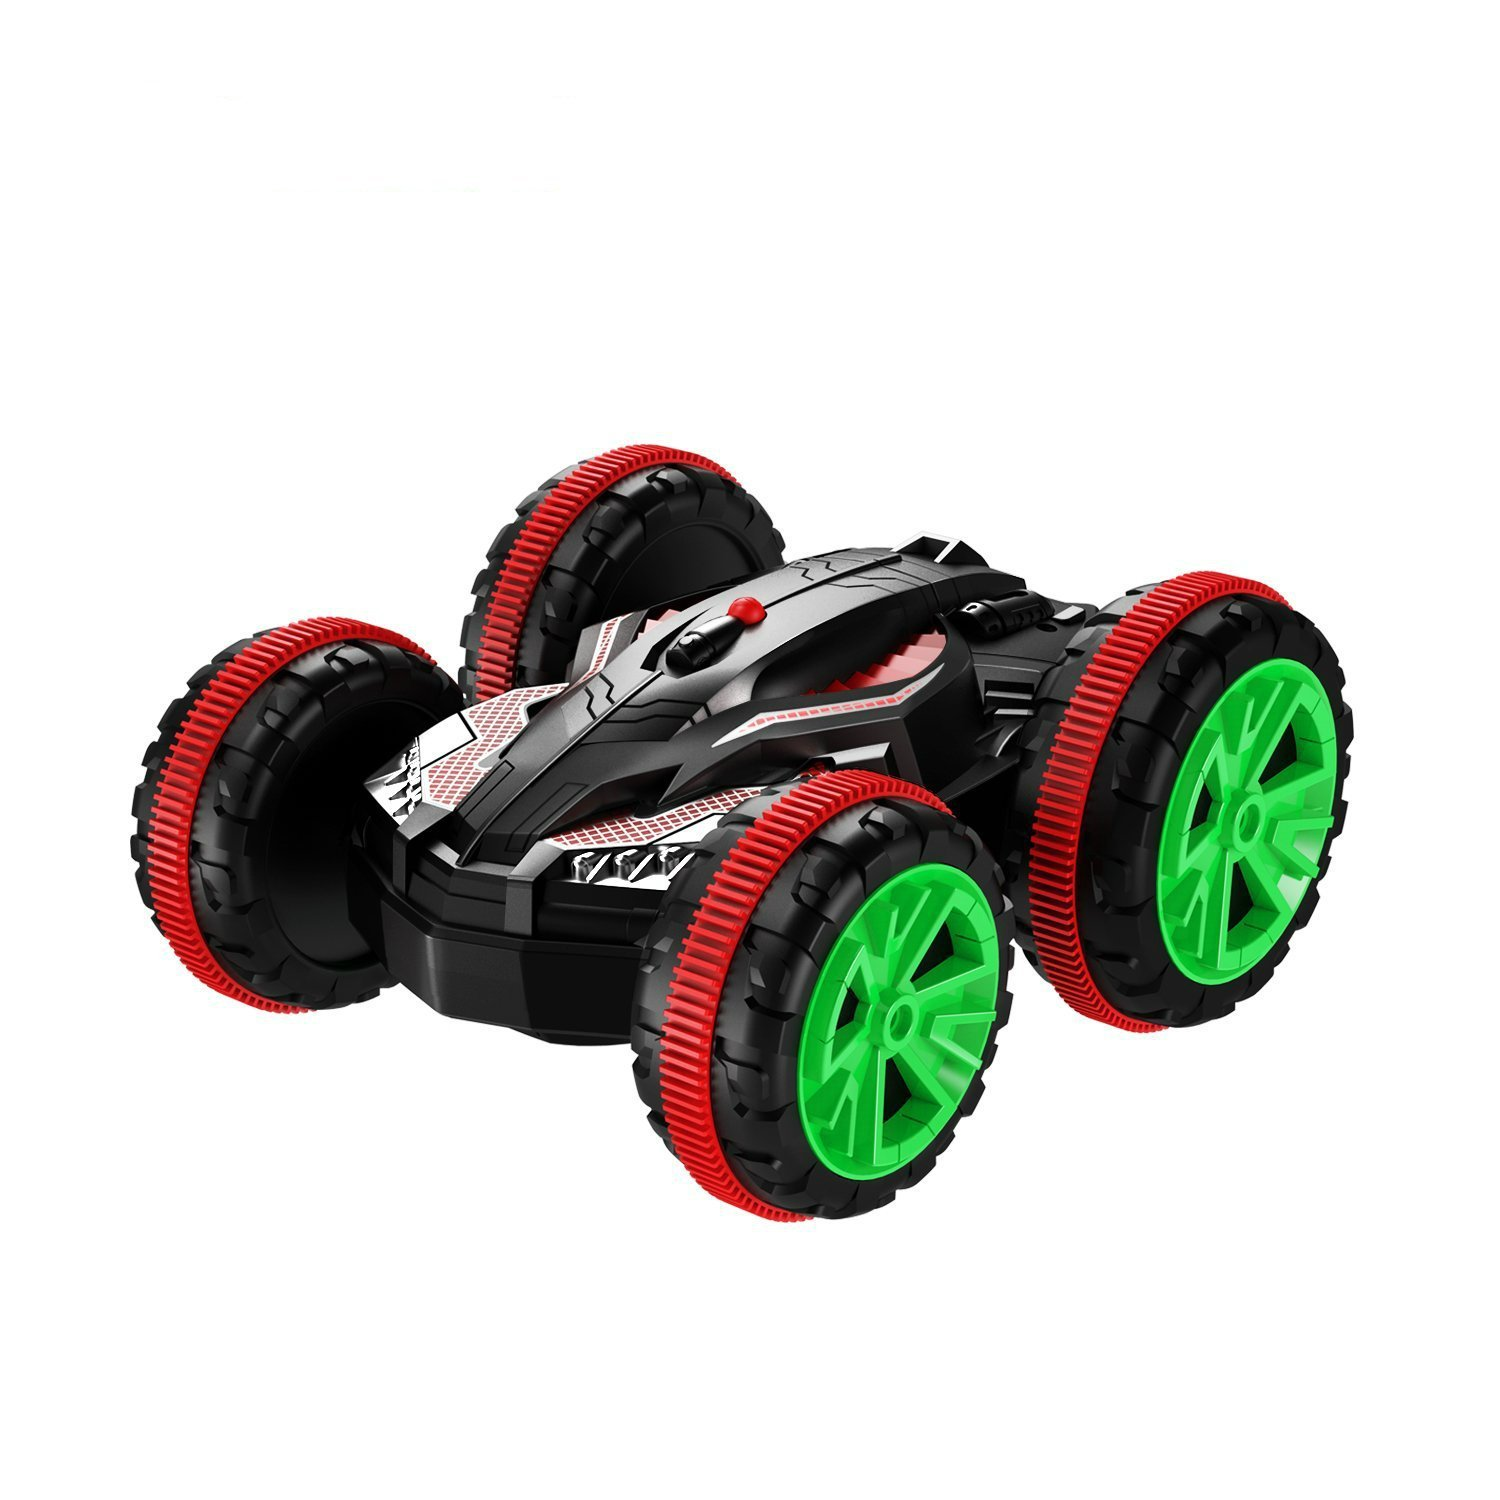 thunder tumbler remote control car with 32816887039 on B5c839 moreover Gg Black Series Remote Control Thunder Tumbler Monster Spinning Car moreover 694202217375 as well More New Lego Ninjago 2014 Set Images as well Product.